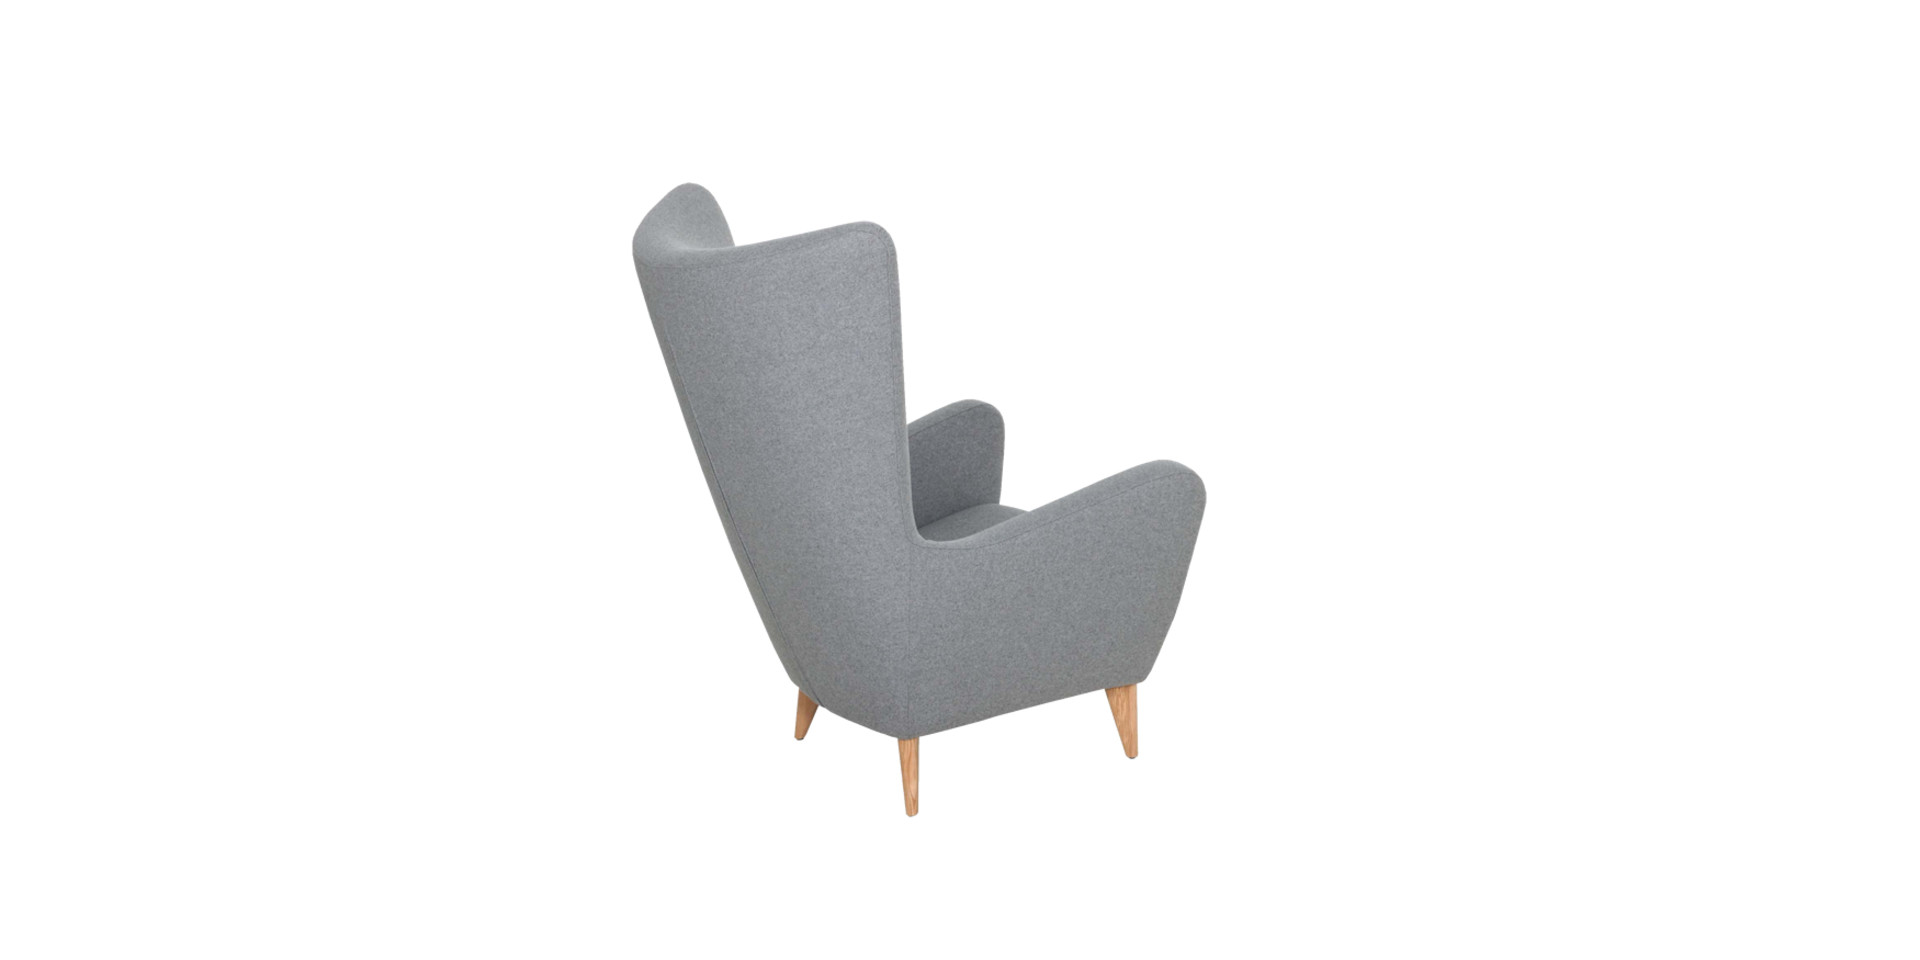 sits-kato-fauteuil-armchair_buttons_panno1000_light_grey_4